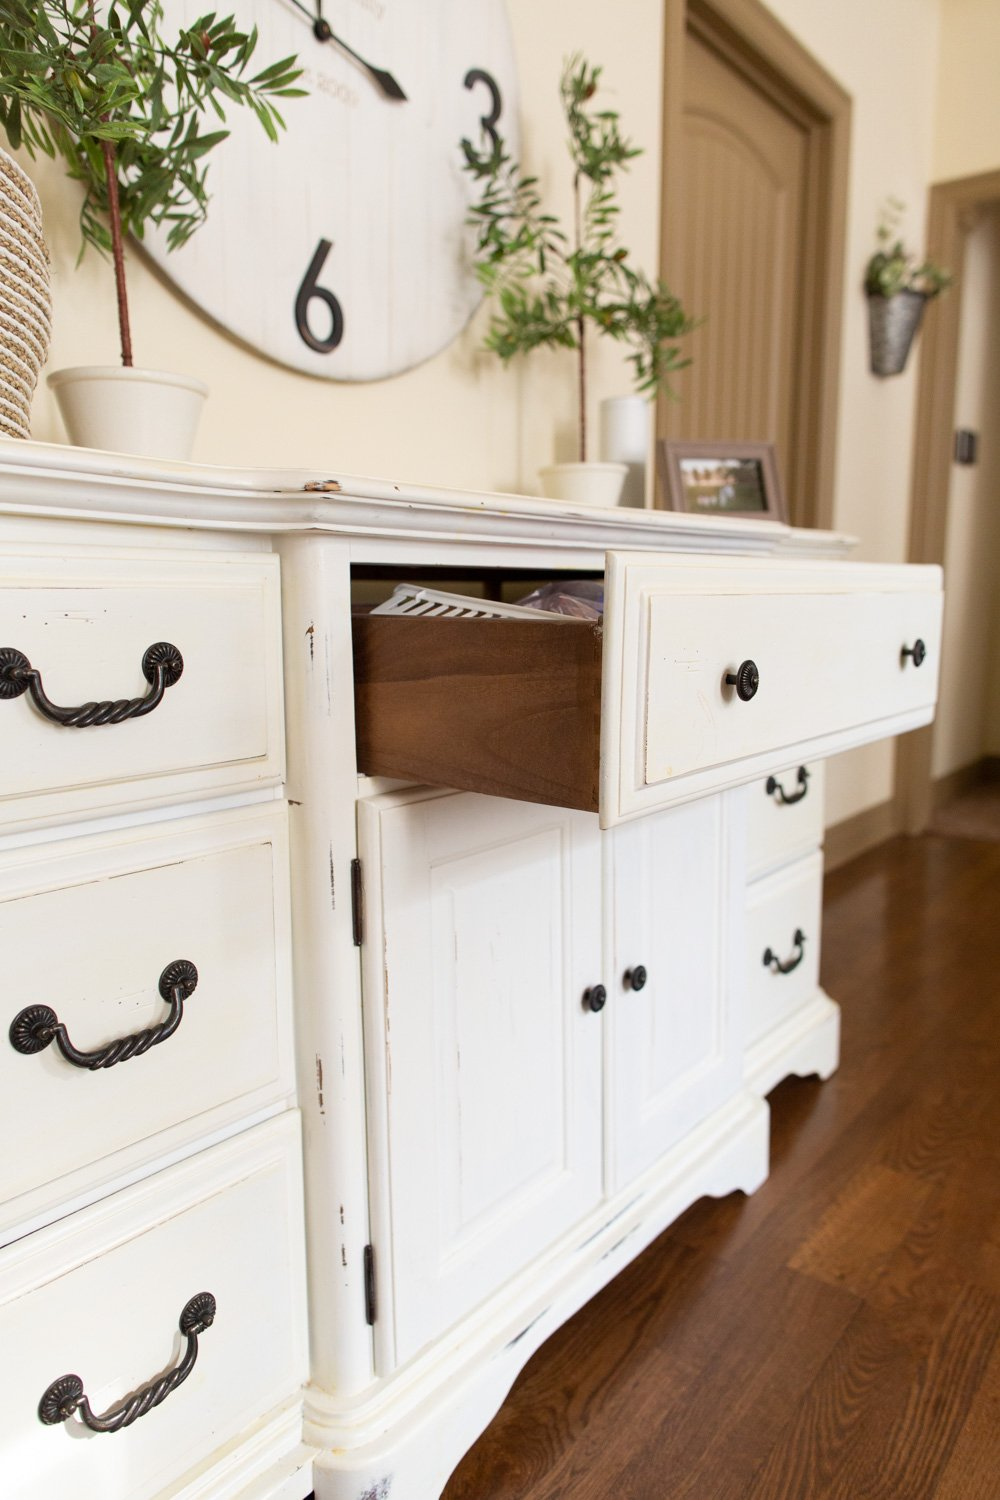 do i need to chalk paint the side of by cabinet doors